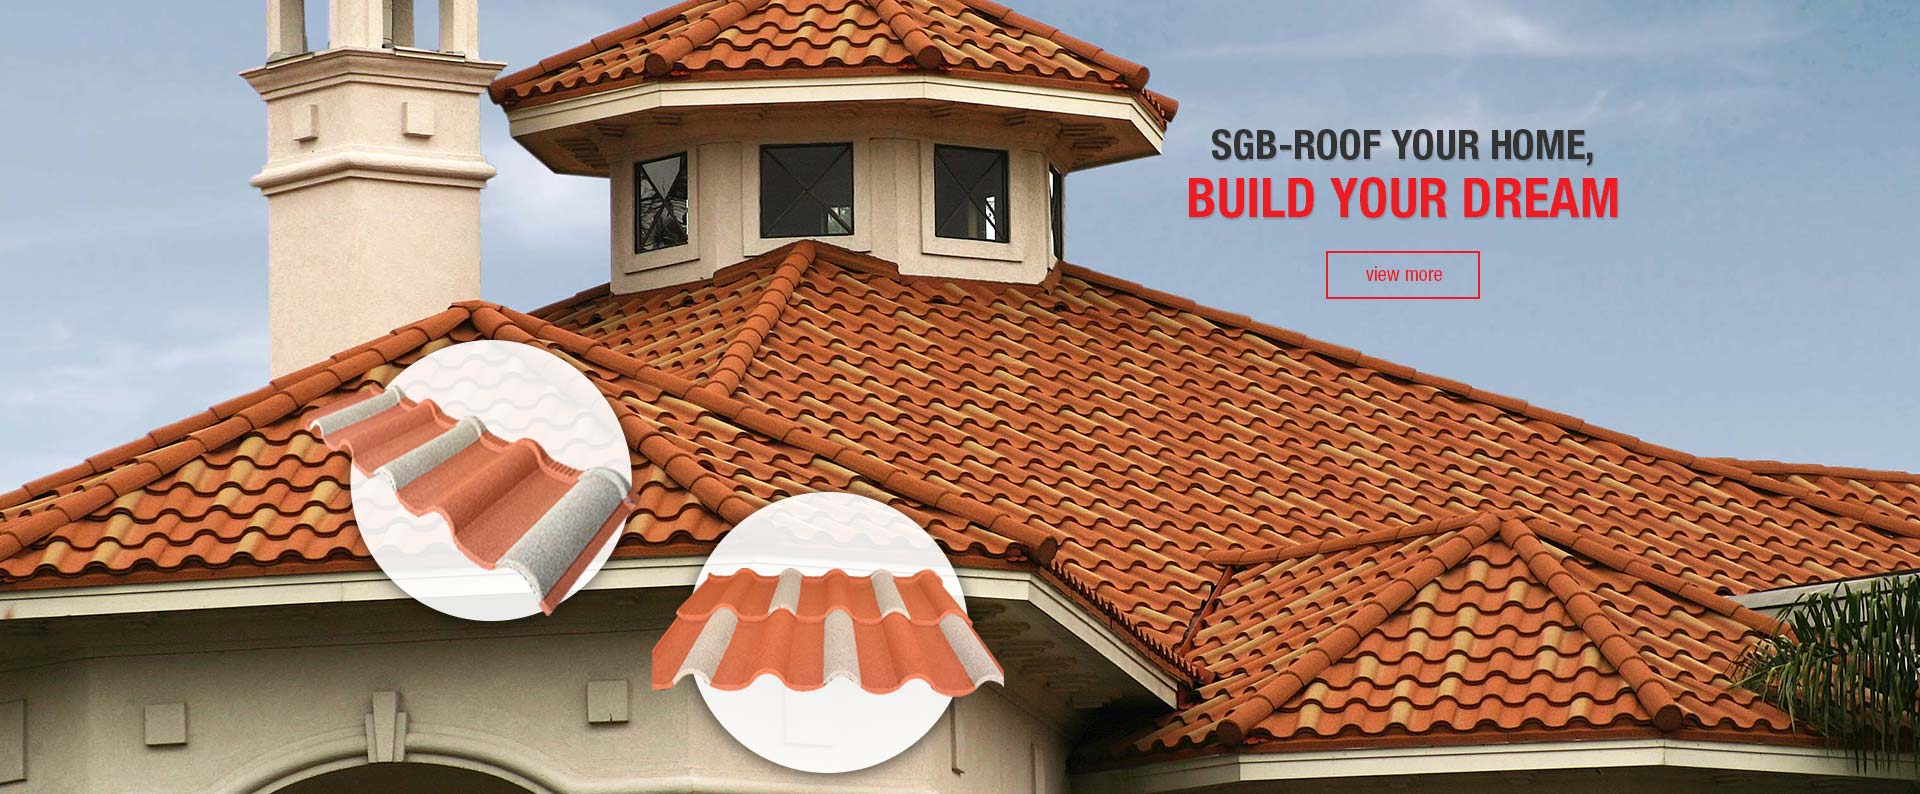 Stone Coated Roof, Rain Gutter System